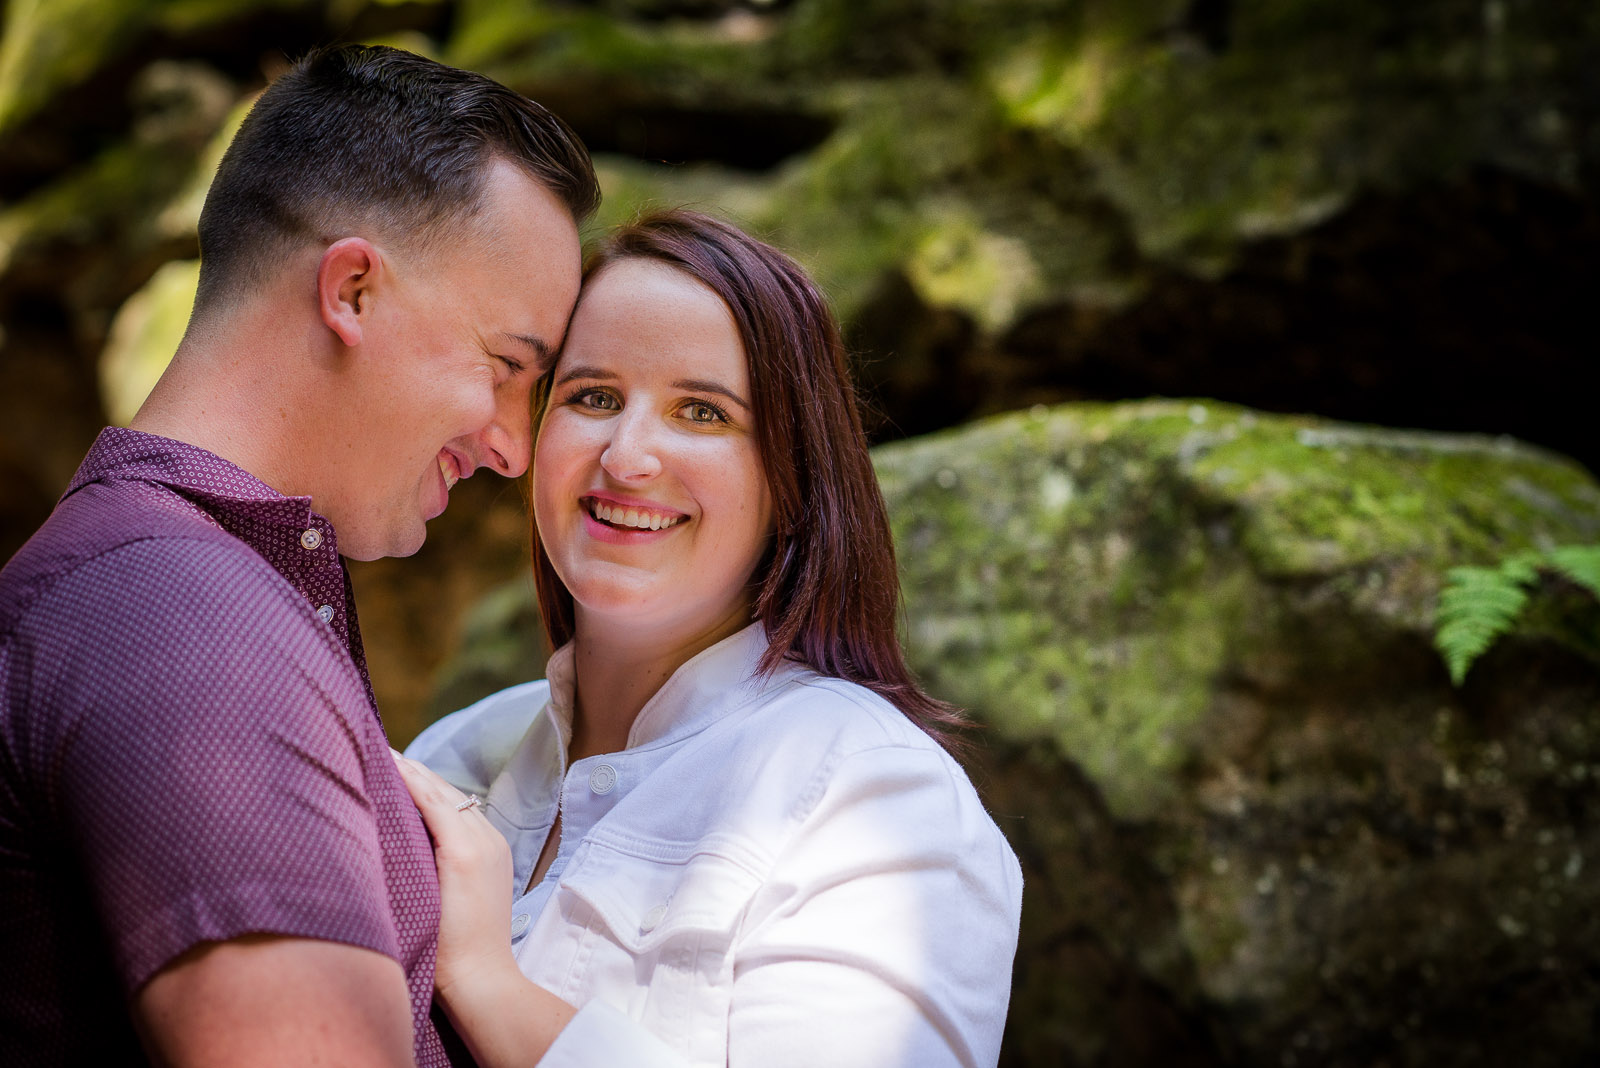 Eric_and_Christy_Photography_Blog_Paige_Eric-11